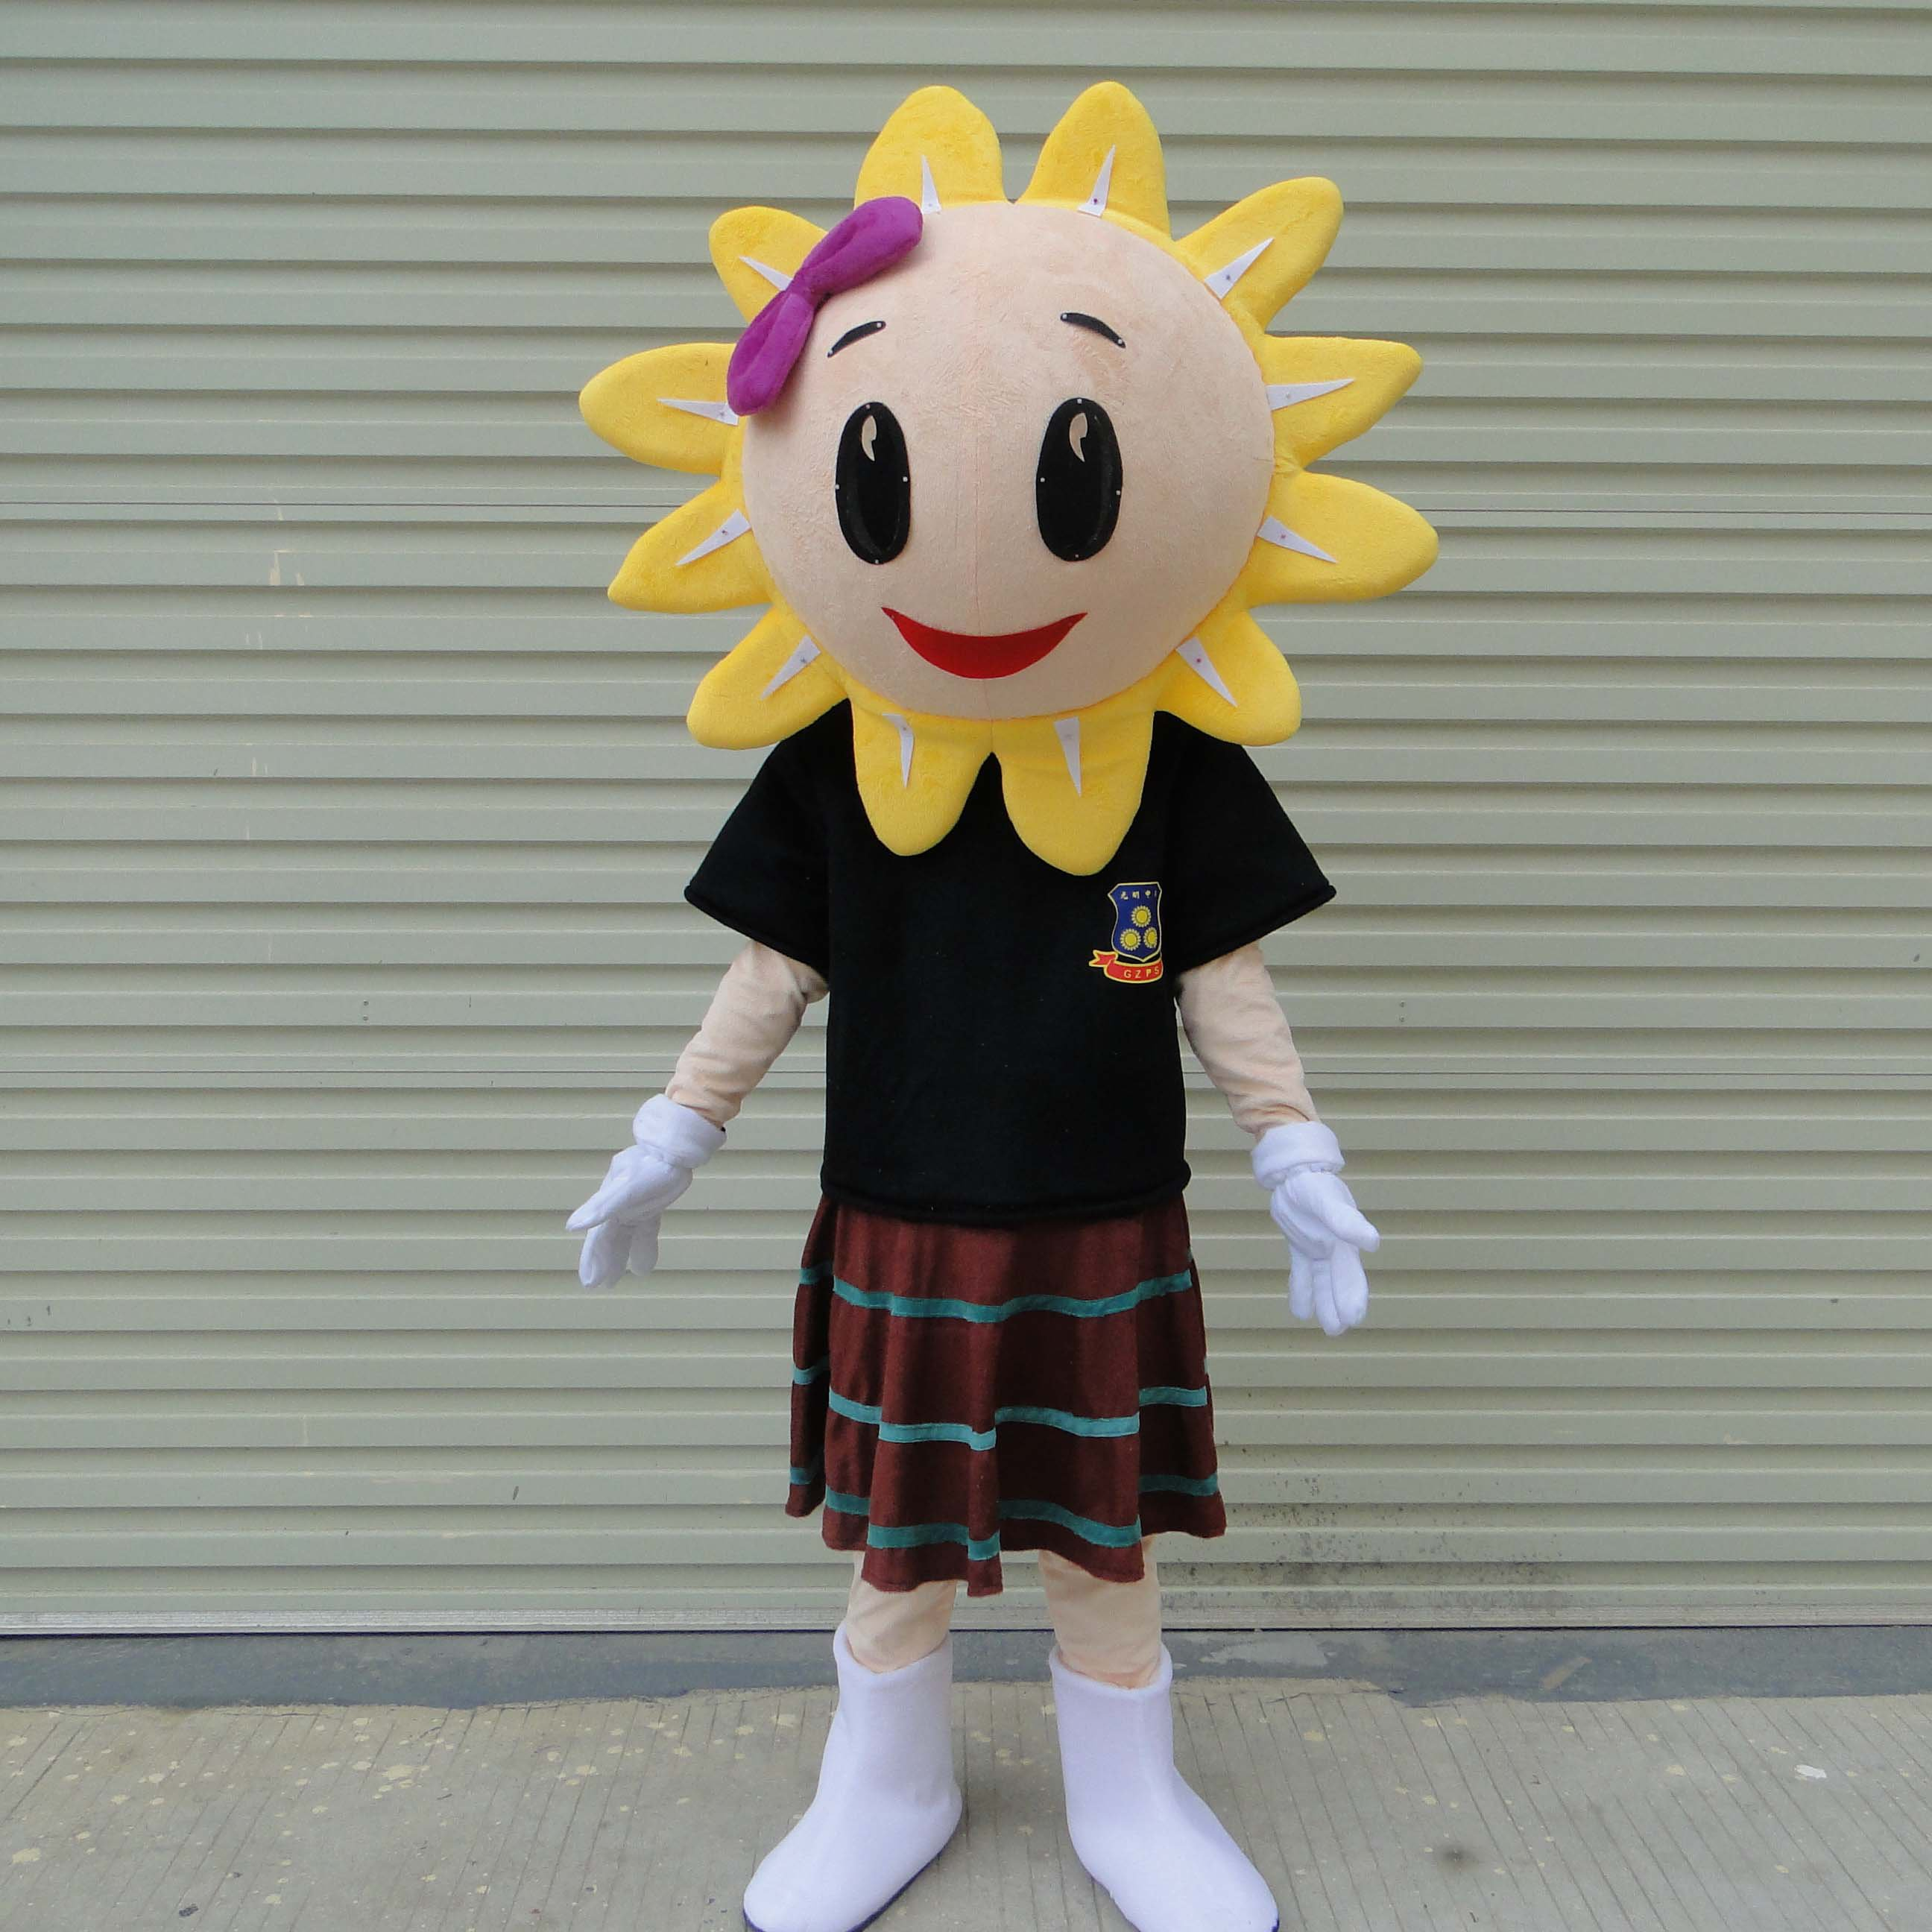 Doll Clothing Doll Clothing Cartoon Sunflower Adult Costumes Walking Unlucky Activities Performed Doll Mascot Costume